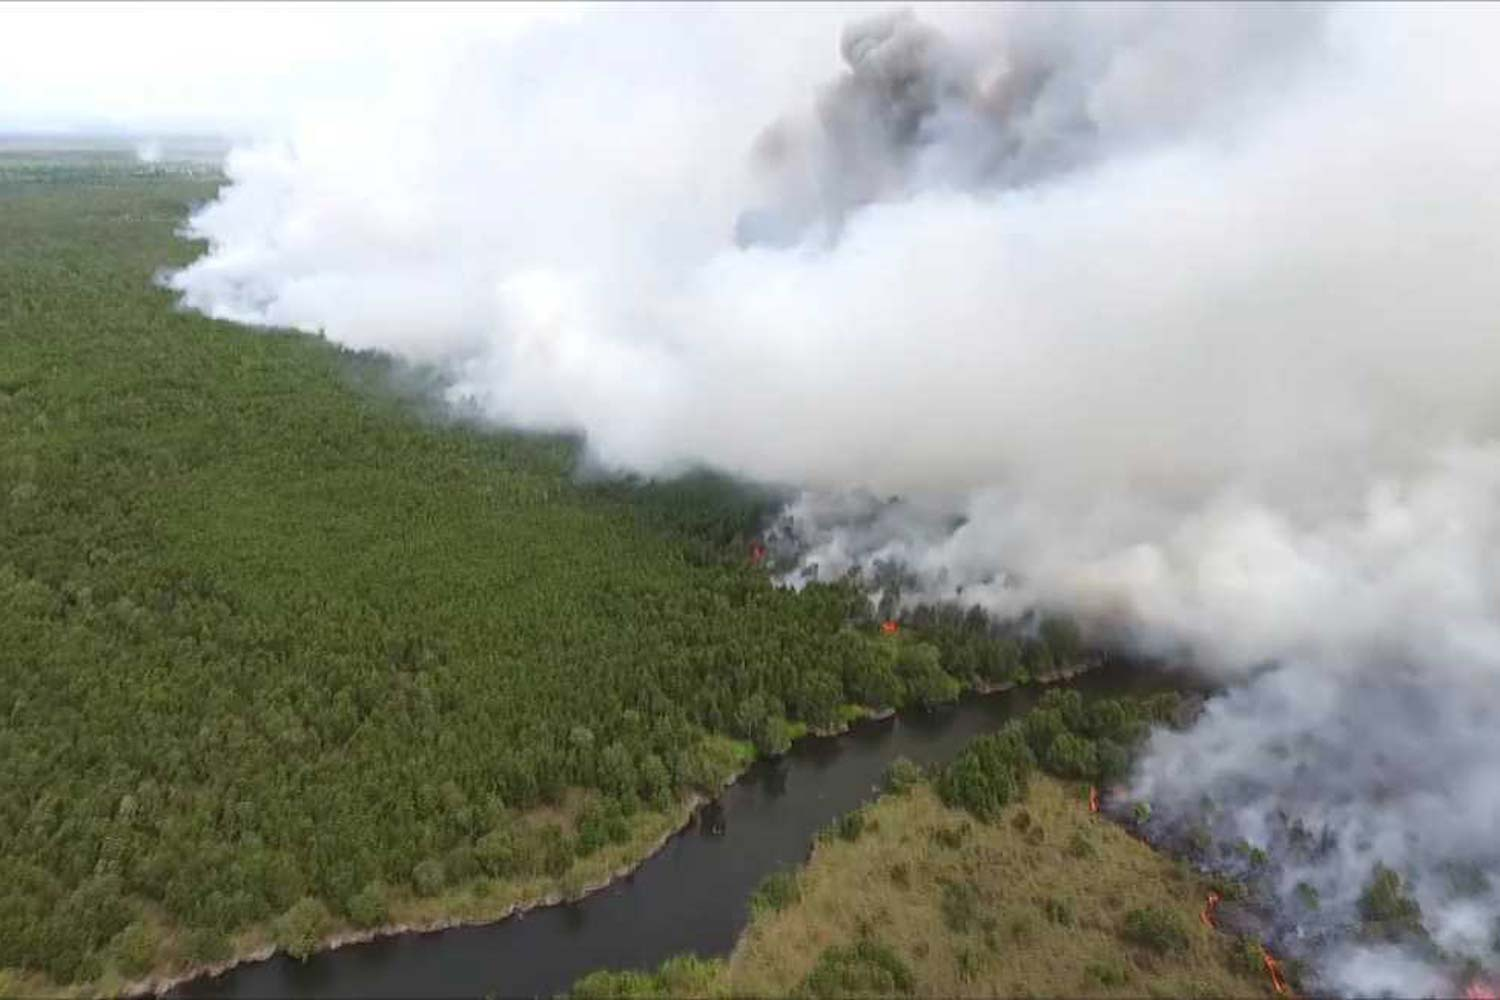 The wildfire in Khuan Khreng peat swamp forest on Monday. It has now spread to five districts in Nakhon Si Thammarat province. (Photo by Nujaree Raekrun)